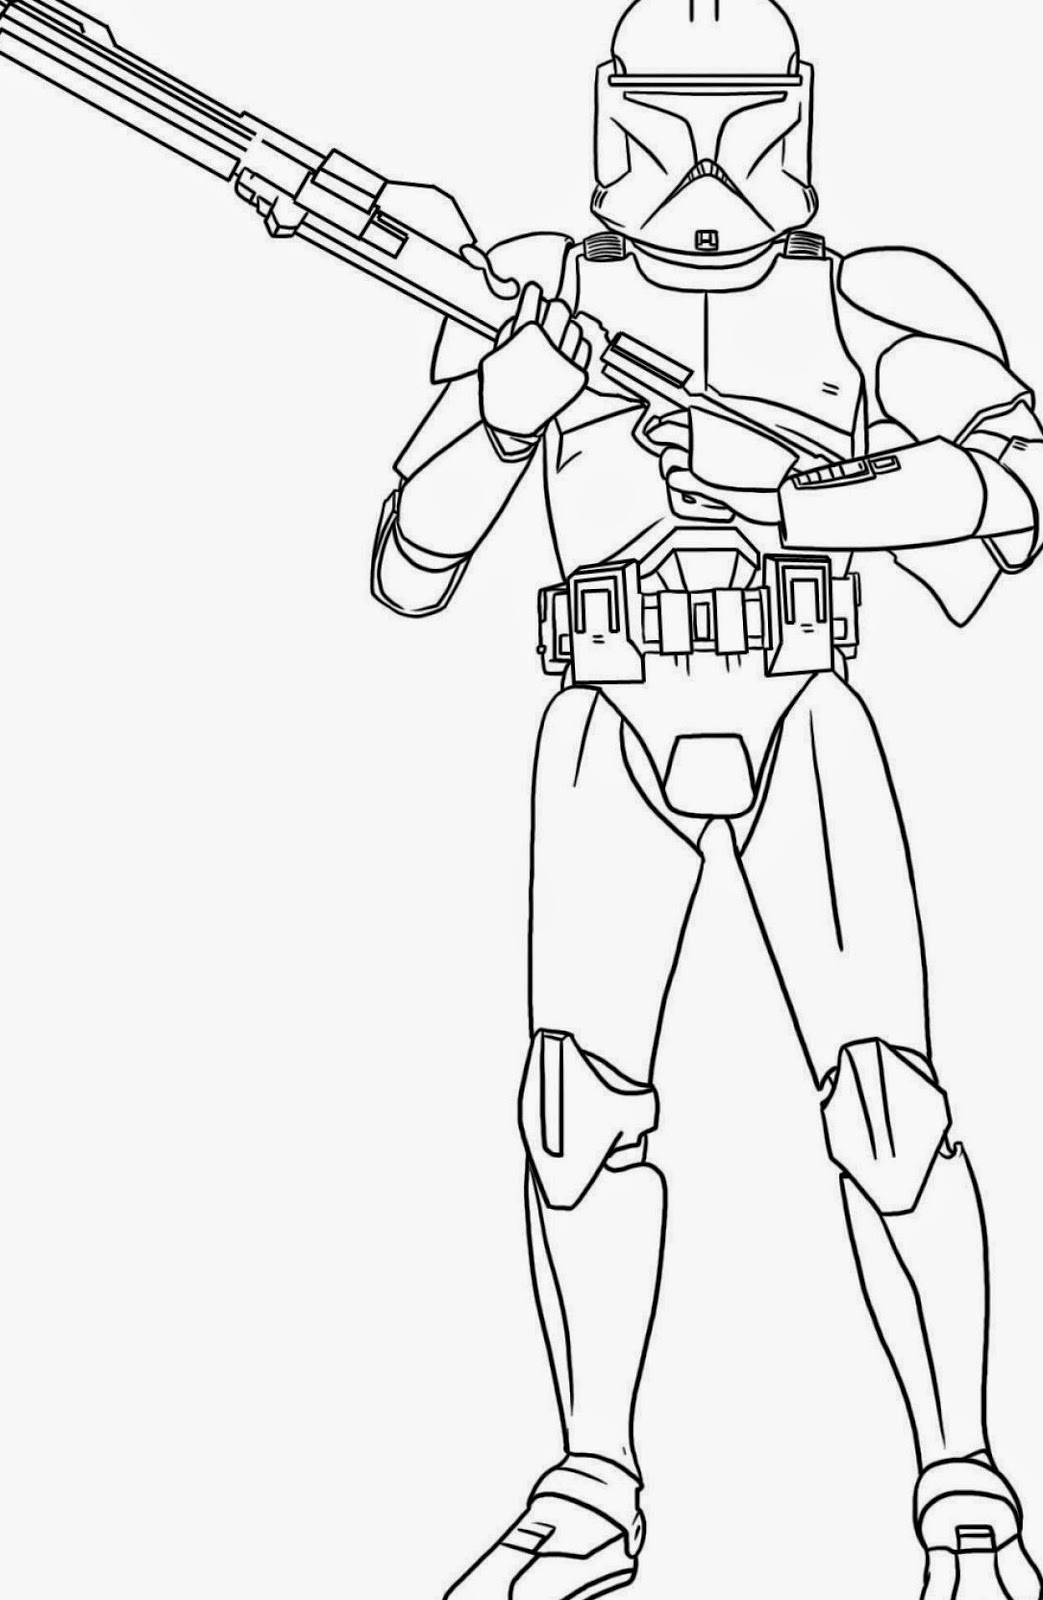 star wars coloring images star wars free to color for kids star wars kids coloring images wars star coloring